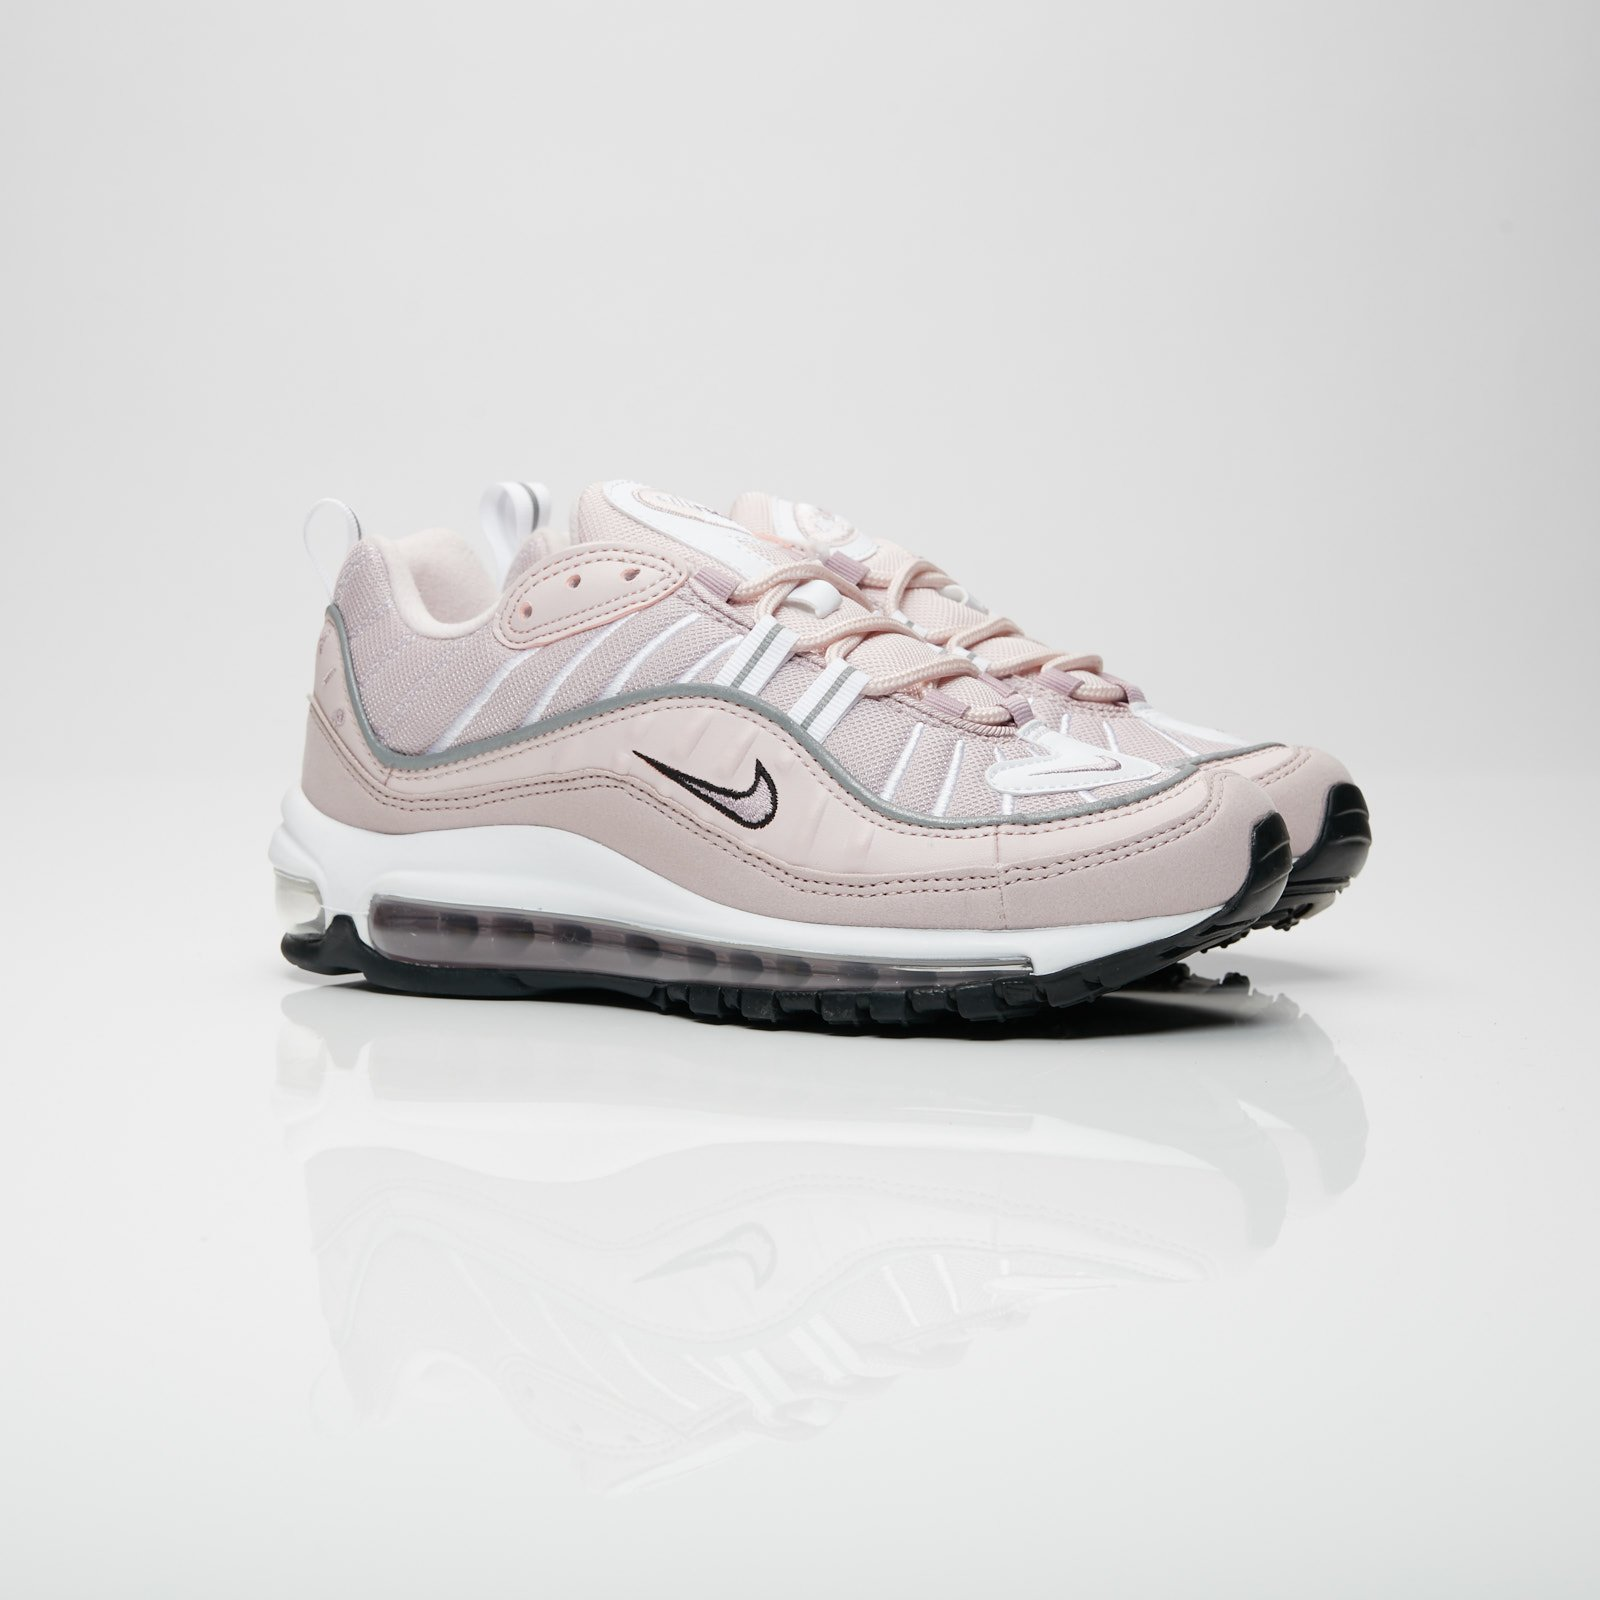 new product b99c6 404e6 Nike Sportswear Wmns Air Max 98